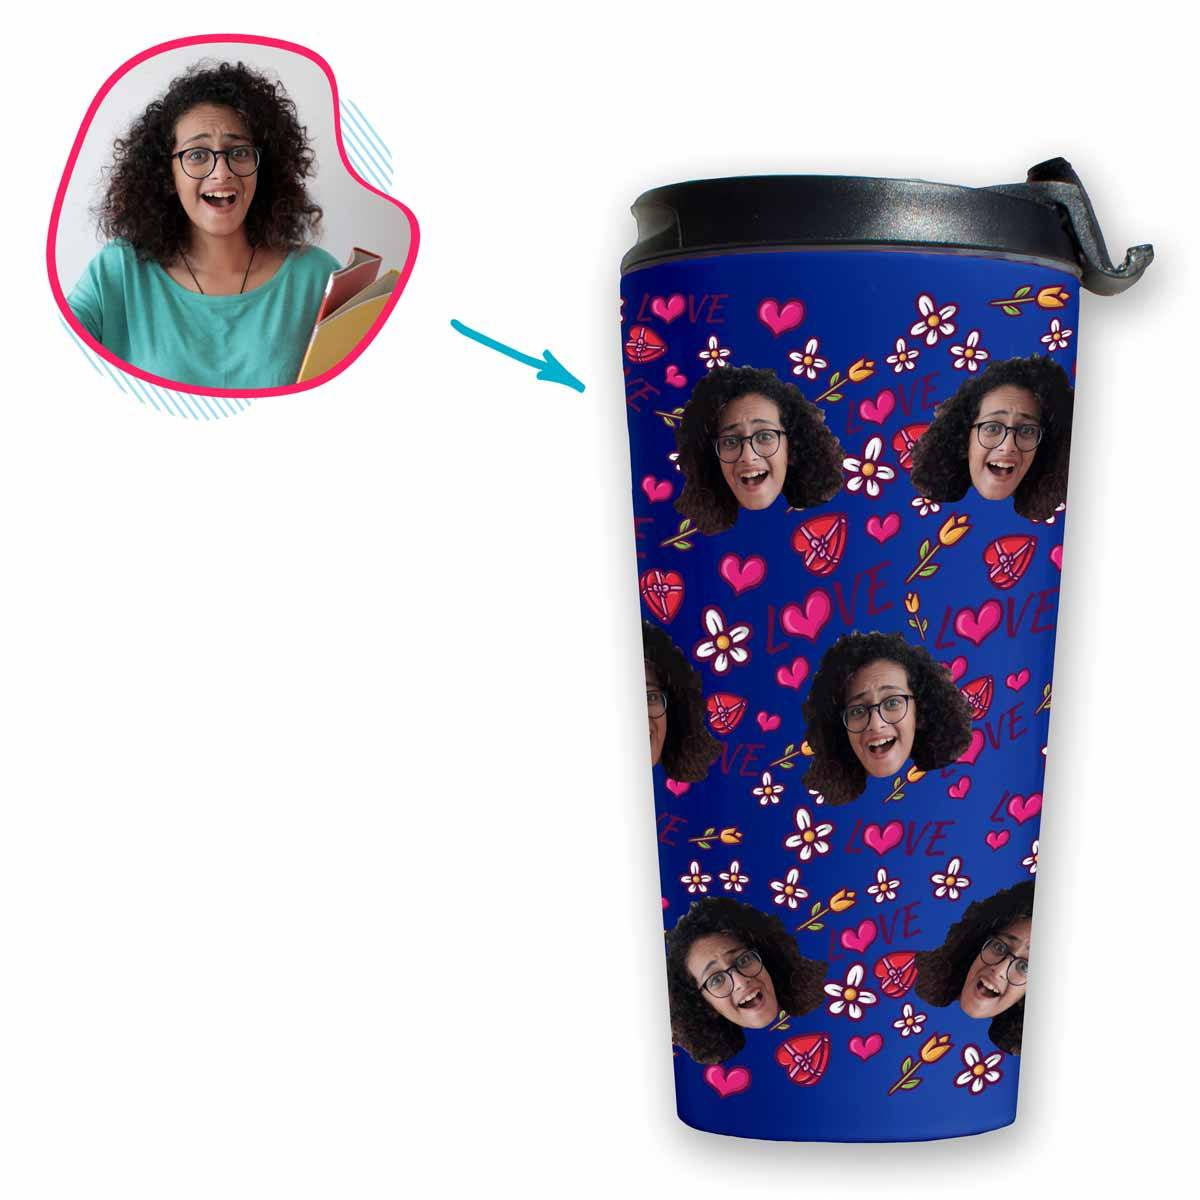 darkblue Hearts and Flowers travel mug personalized with photo of face printed on it